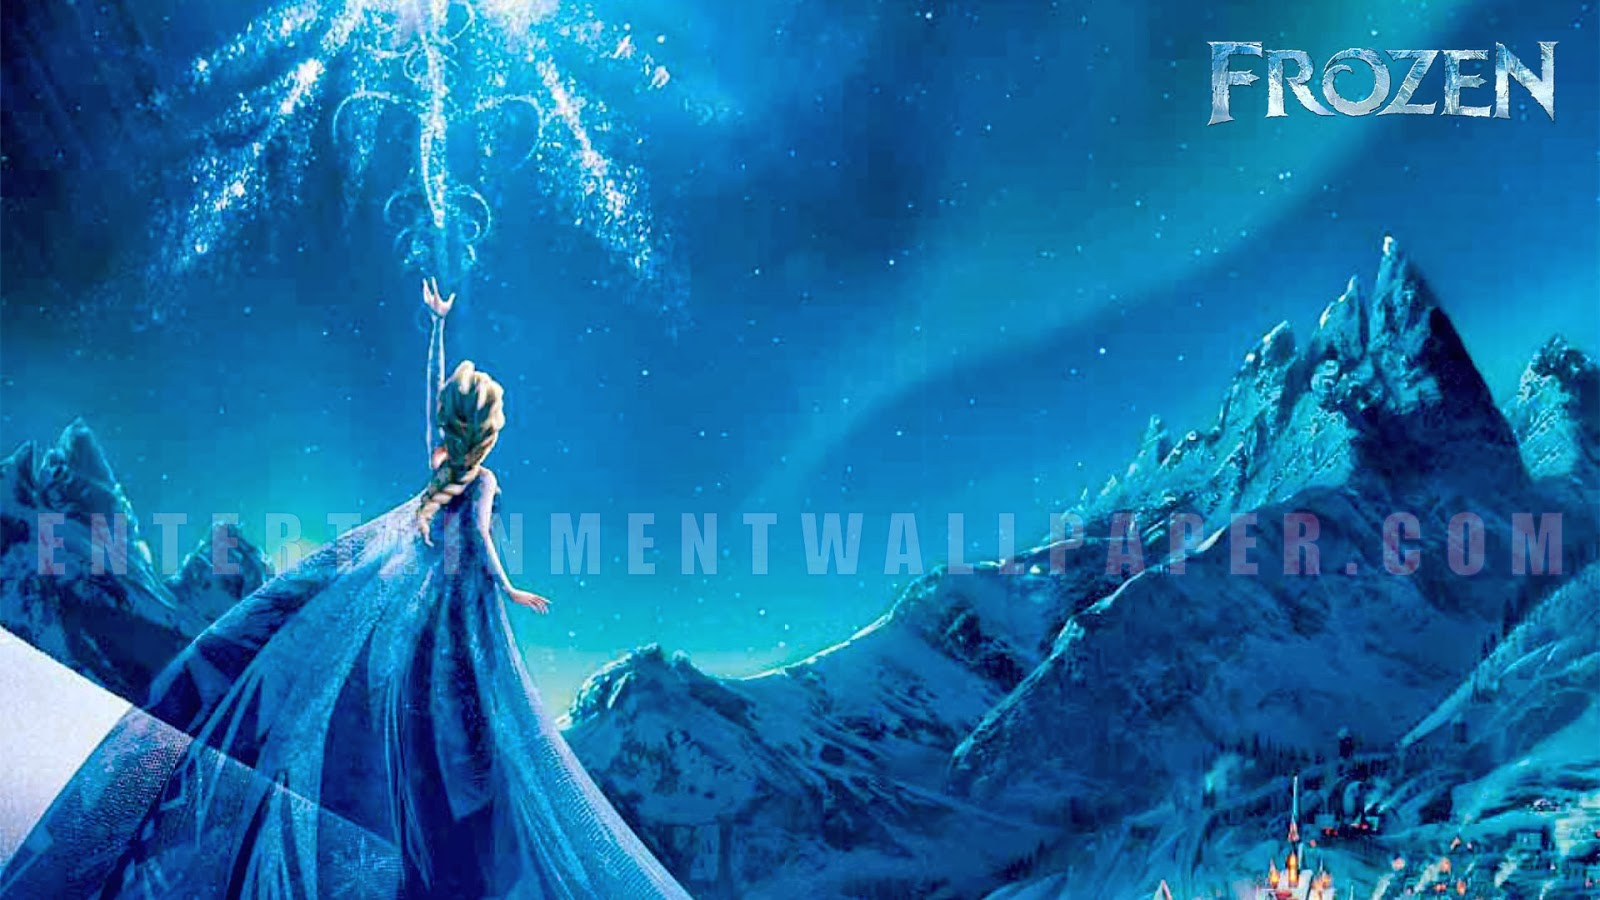 disney 3d hd wallpapers 1080p - photo #36